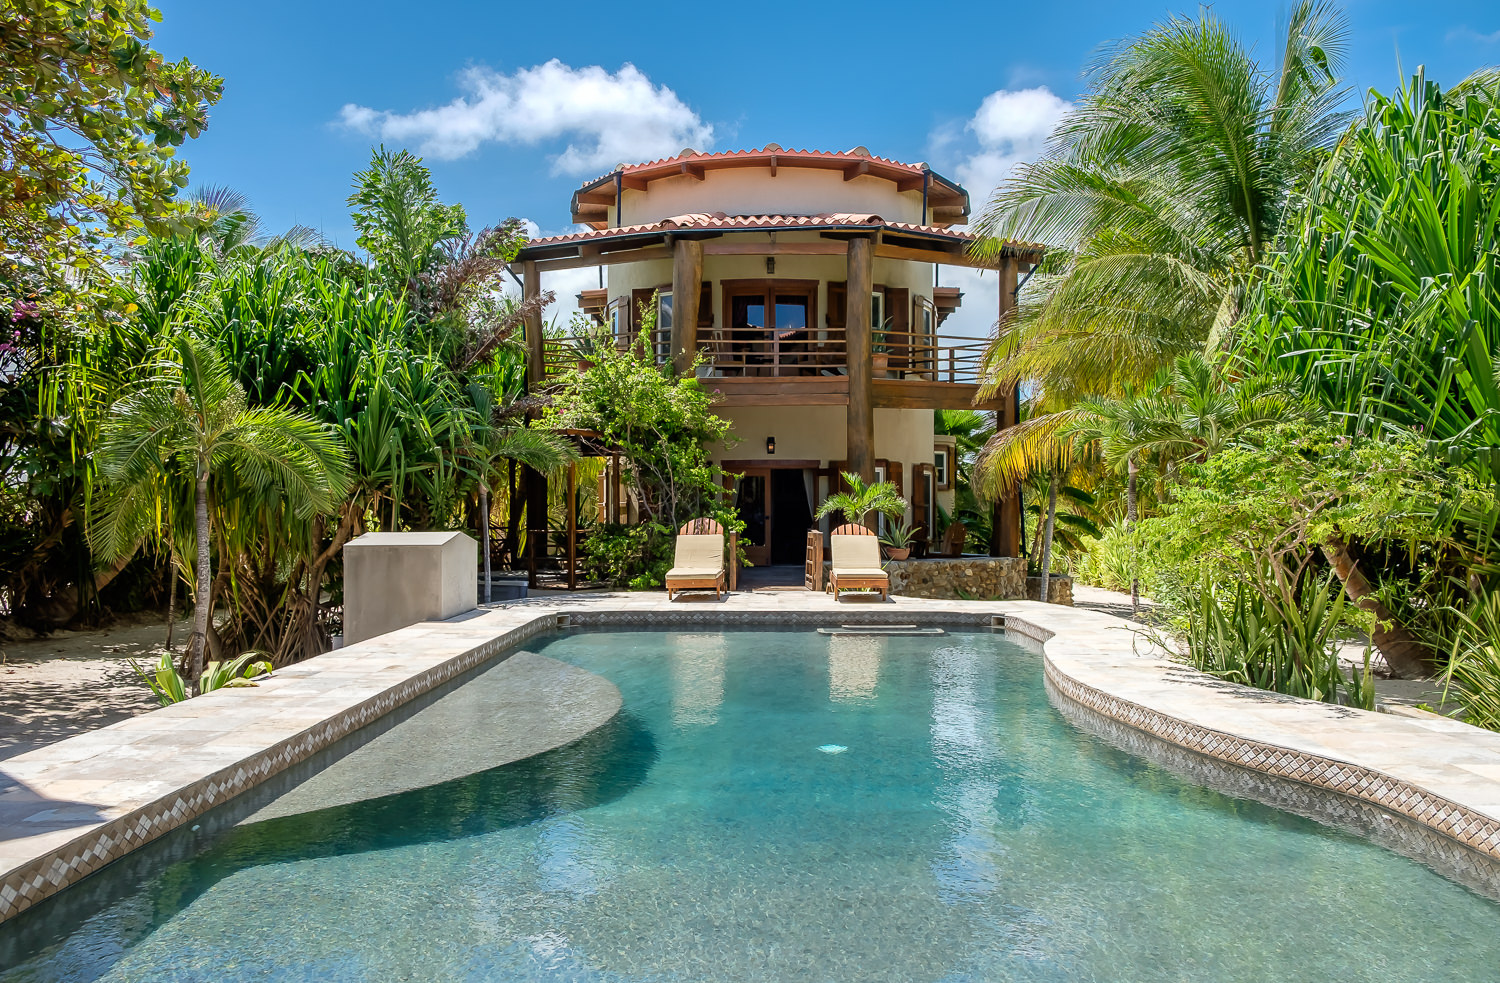 Single Family Home for Sale at Solaria Two, A Designer Beachfront Paradise San Pedro Town, Ambergris Caye, Belize